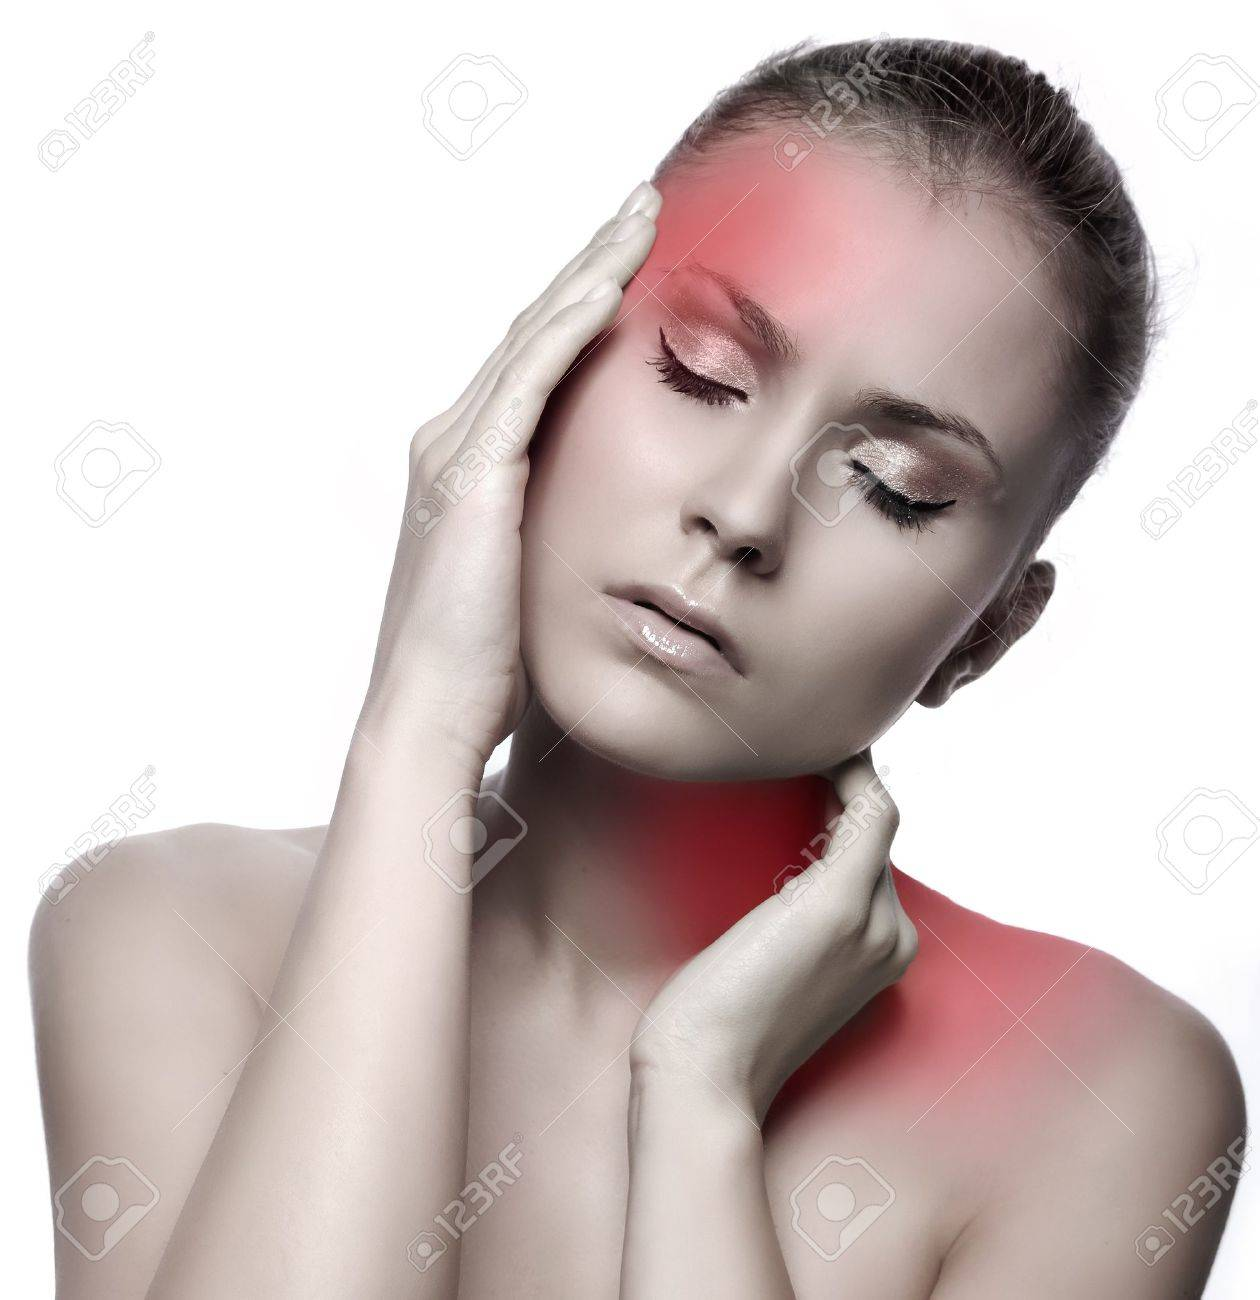 woman with headache on white background Stock Photo - 9884011